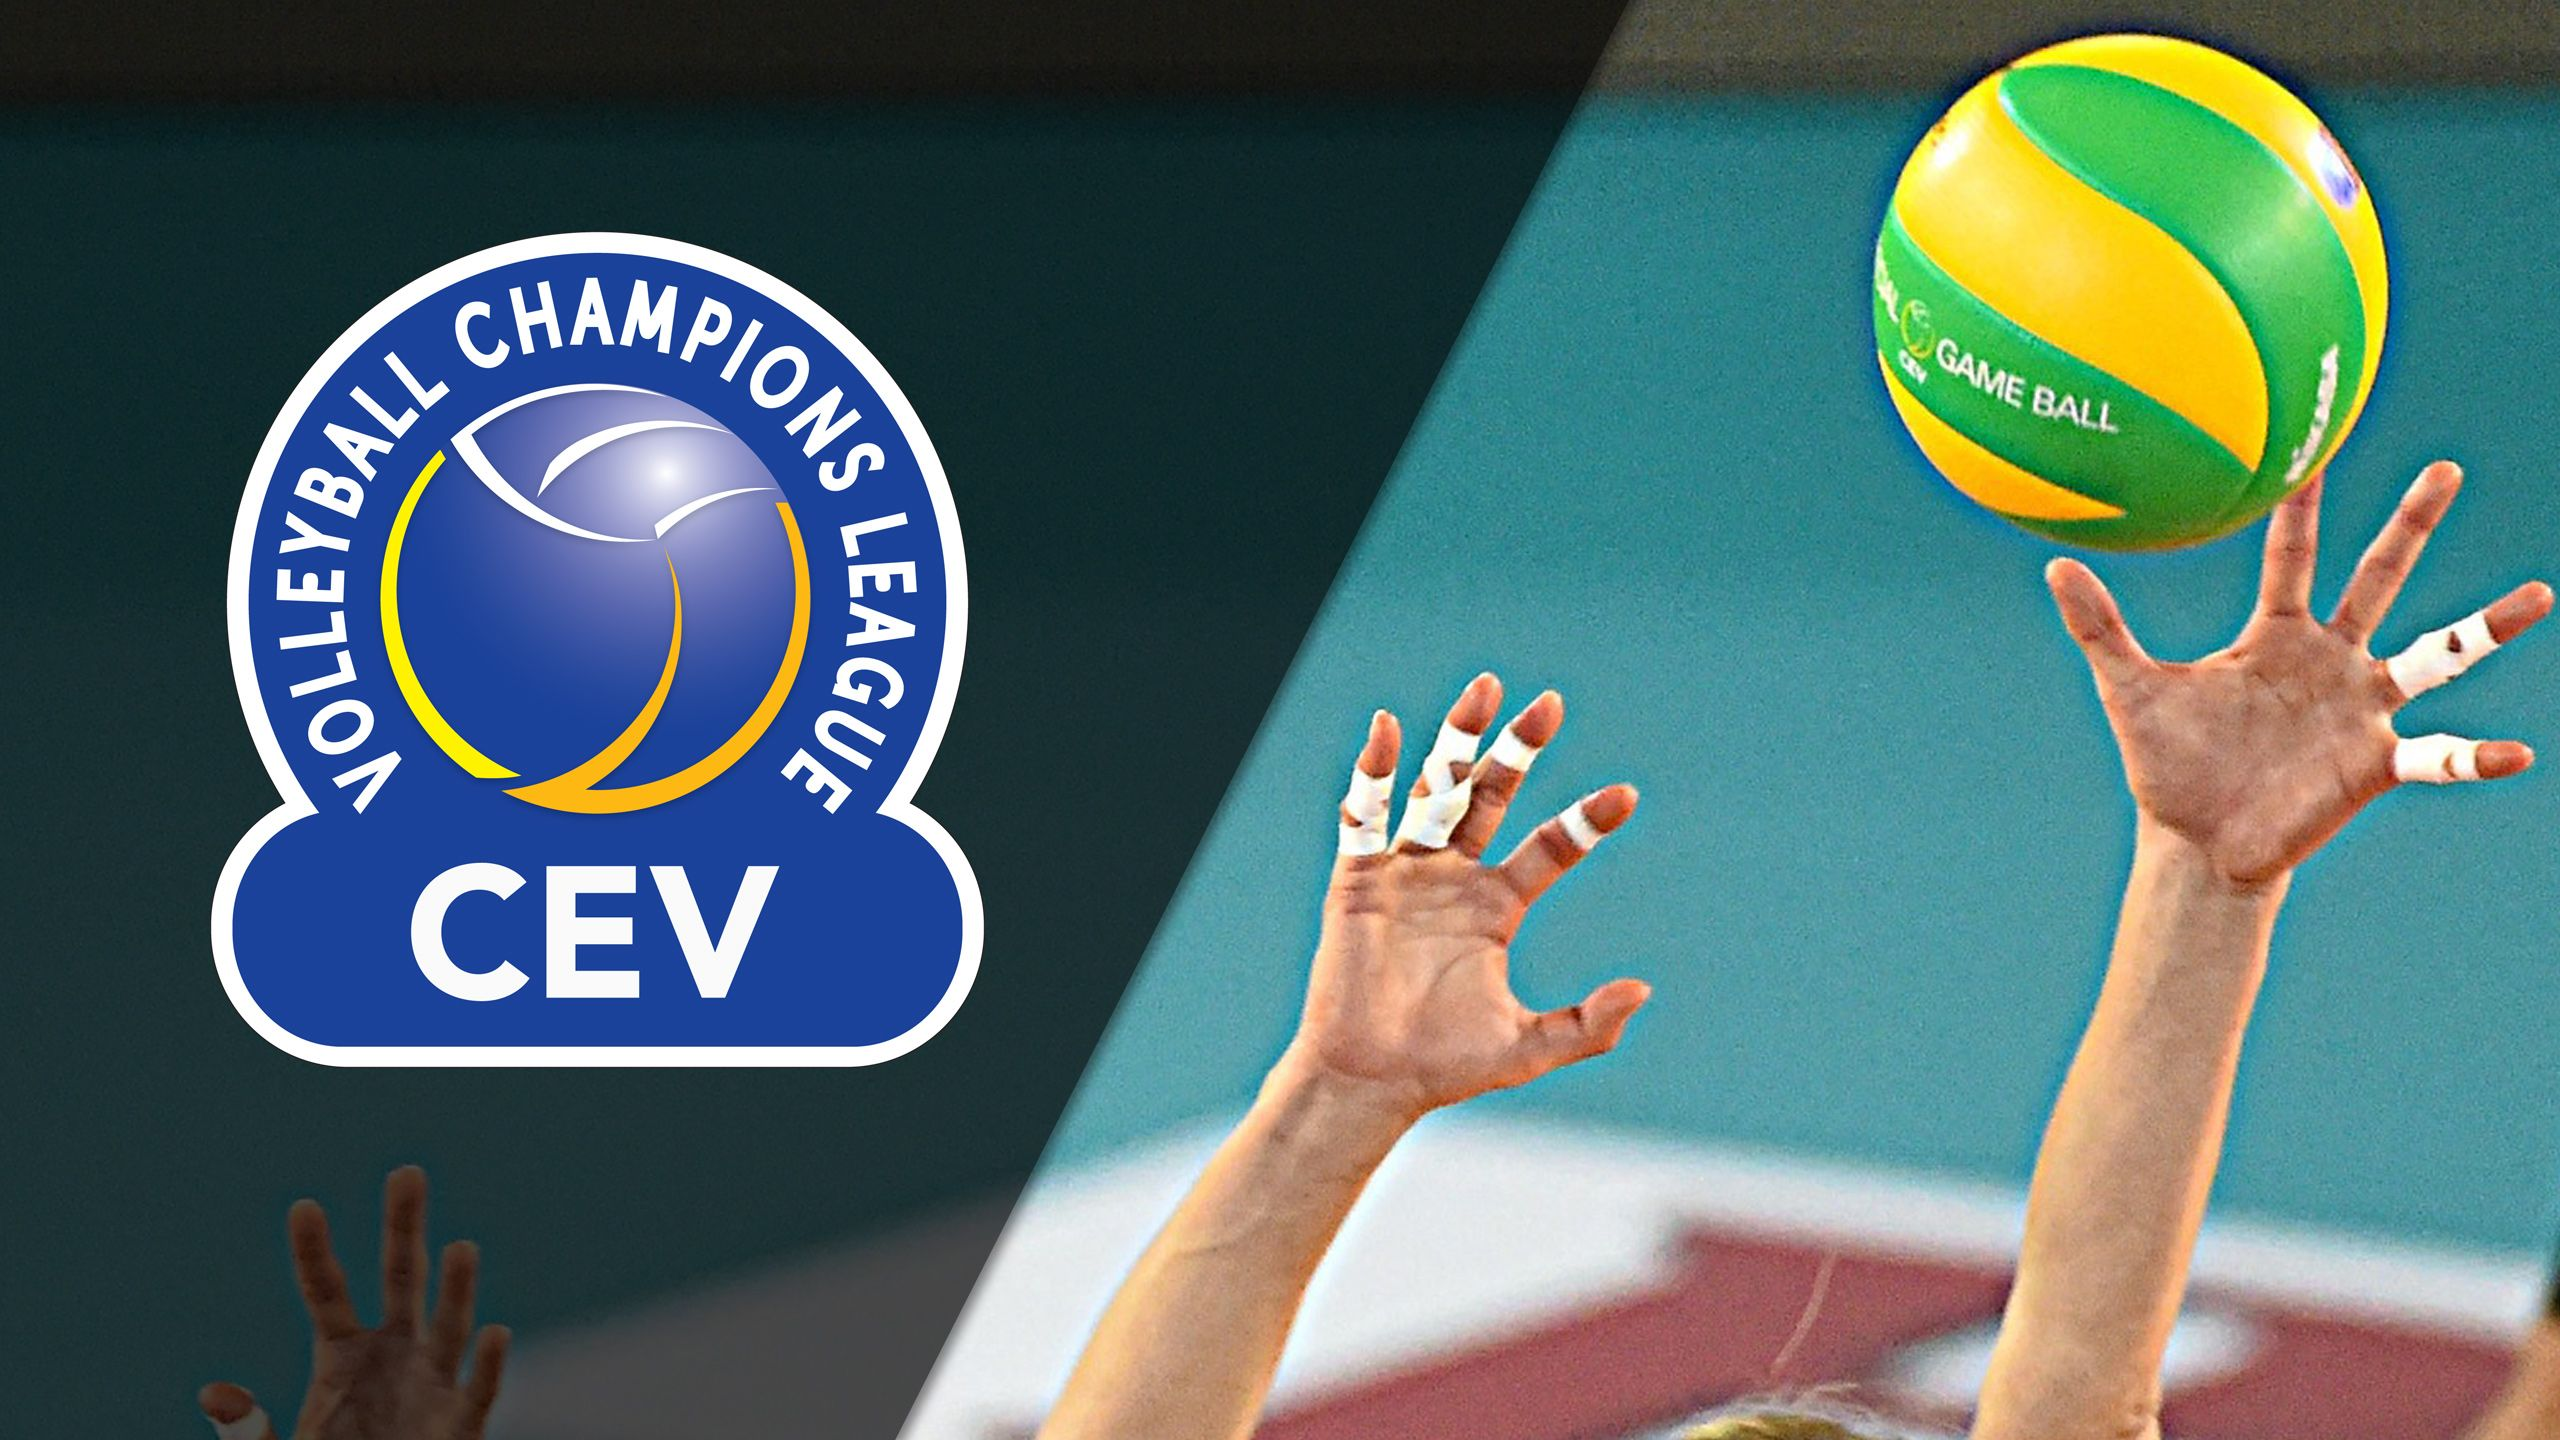 Vfb Friedrichshafen vs. Berlin Recycling Volleys (CEV Men's Champions League)